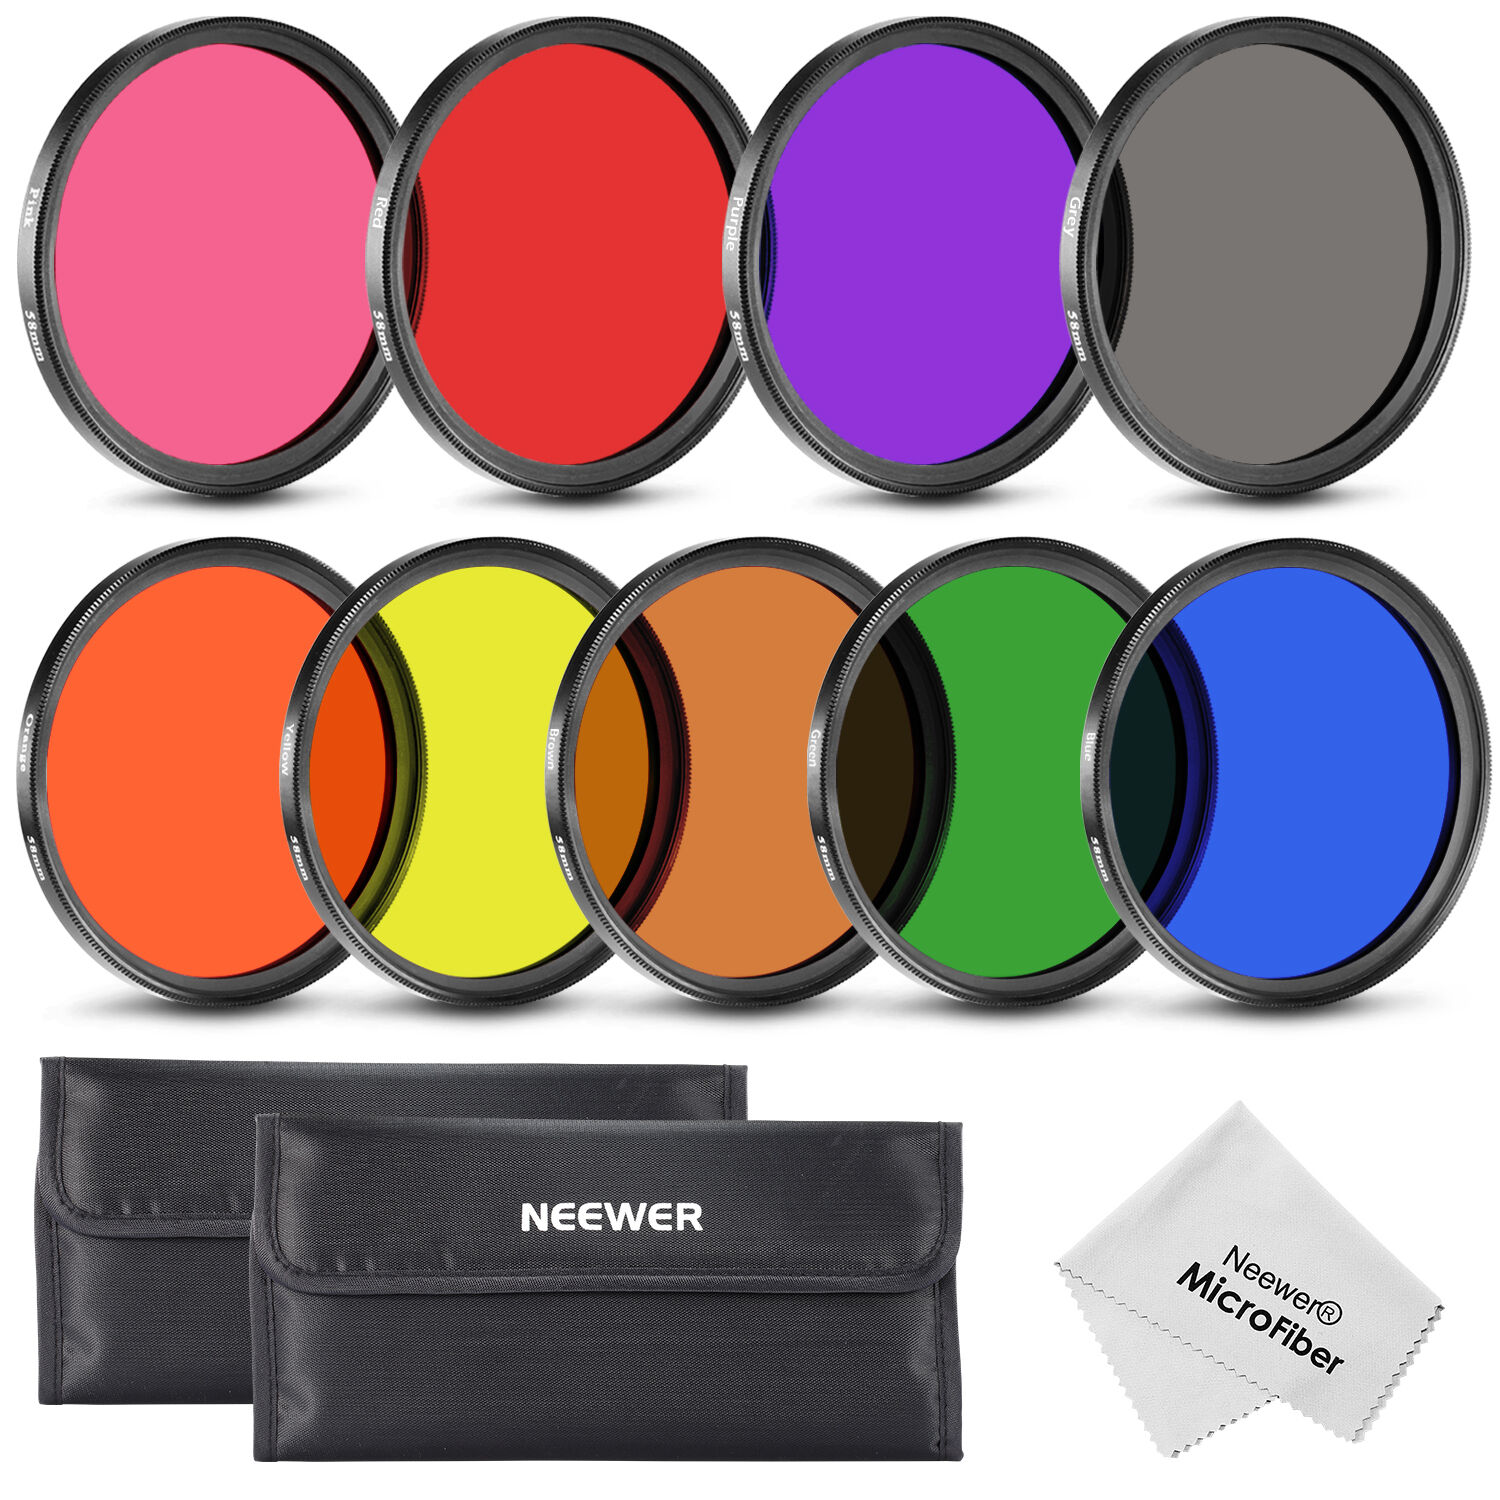 Neewer 58MM Complete Full Color Lens Filter Set  for Camera